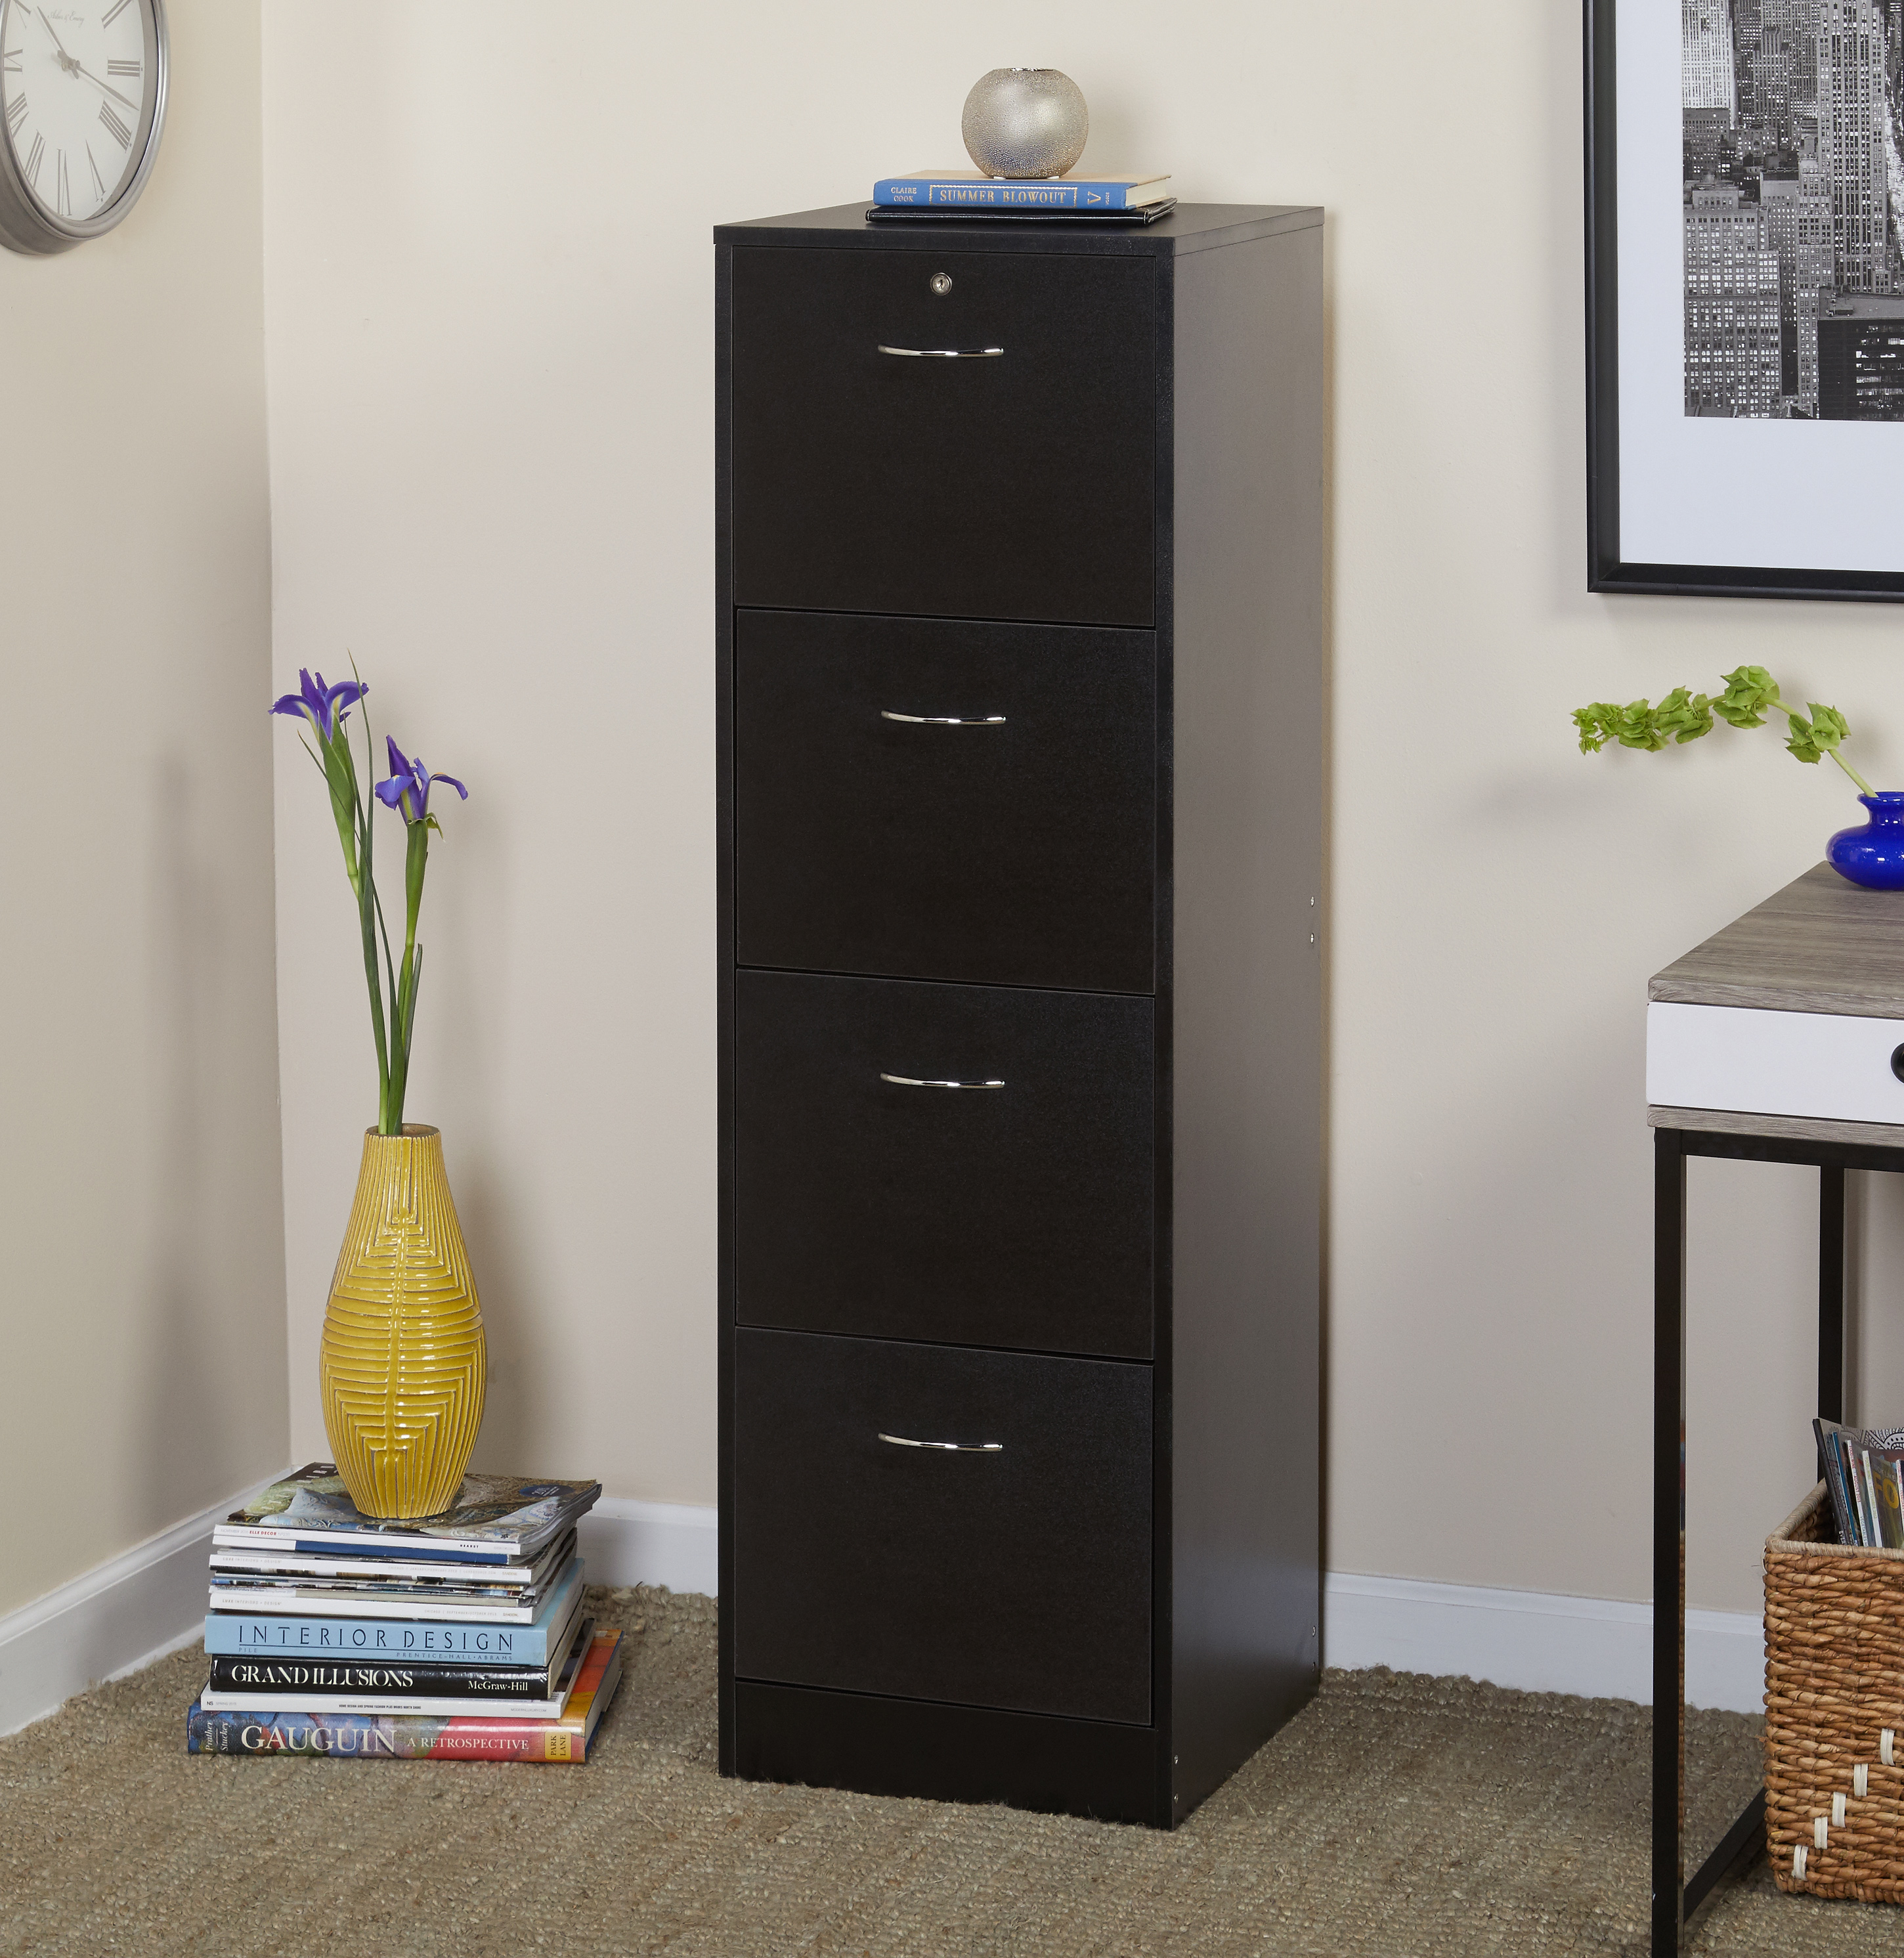 Wilson 4 Drawer Vertical Wood Lockable Filing Cabinet, Black